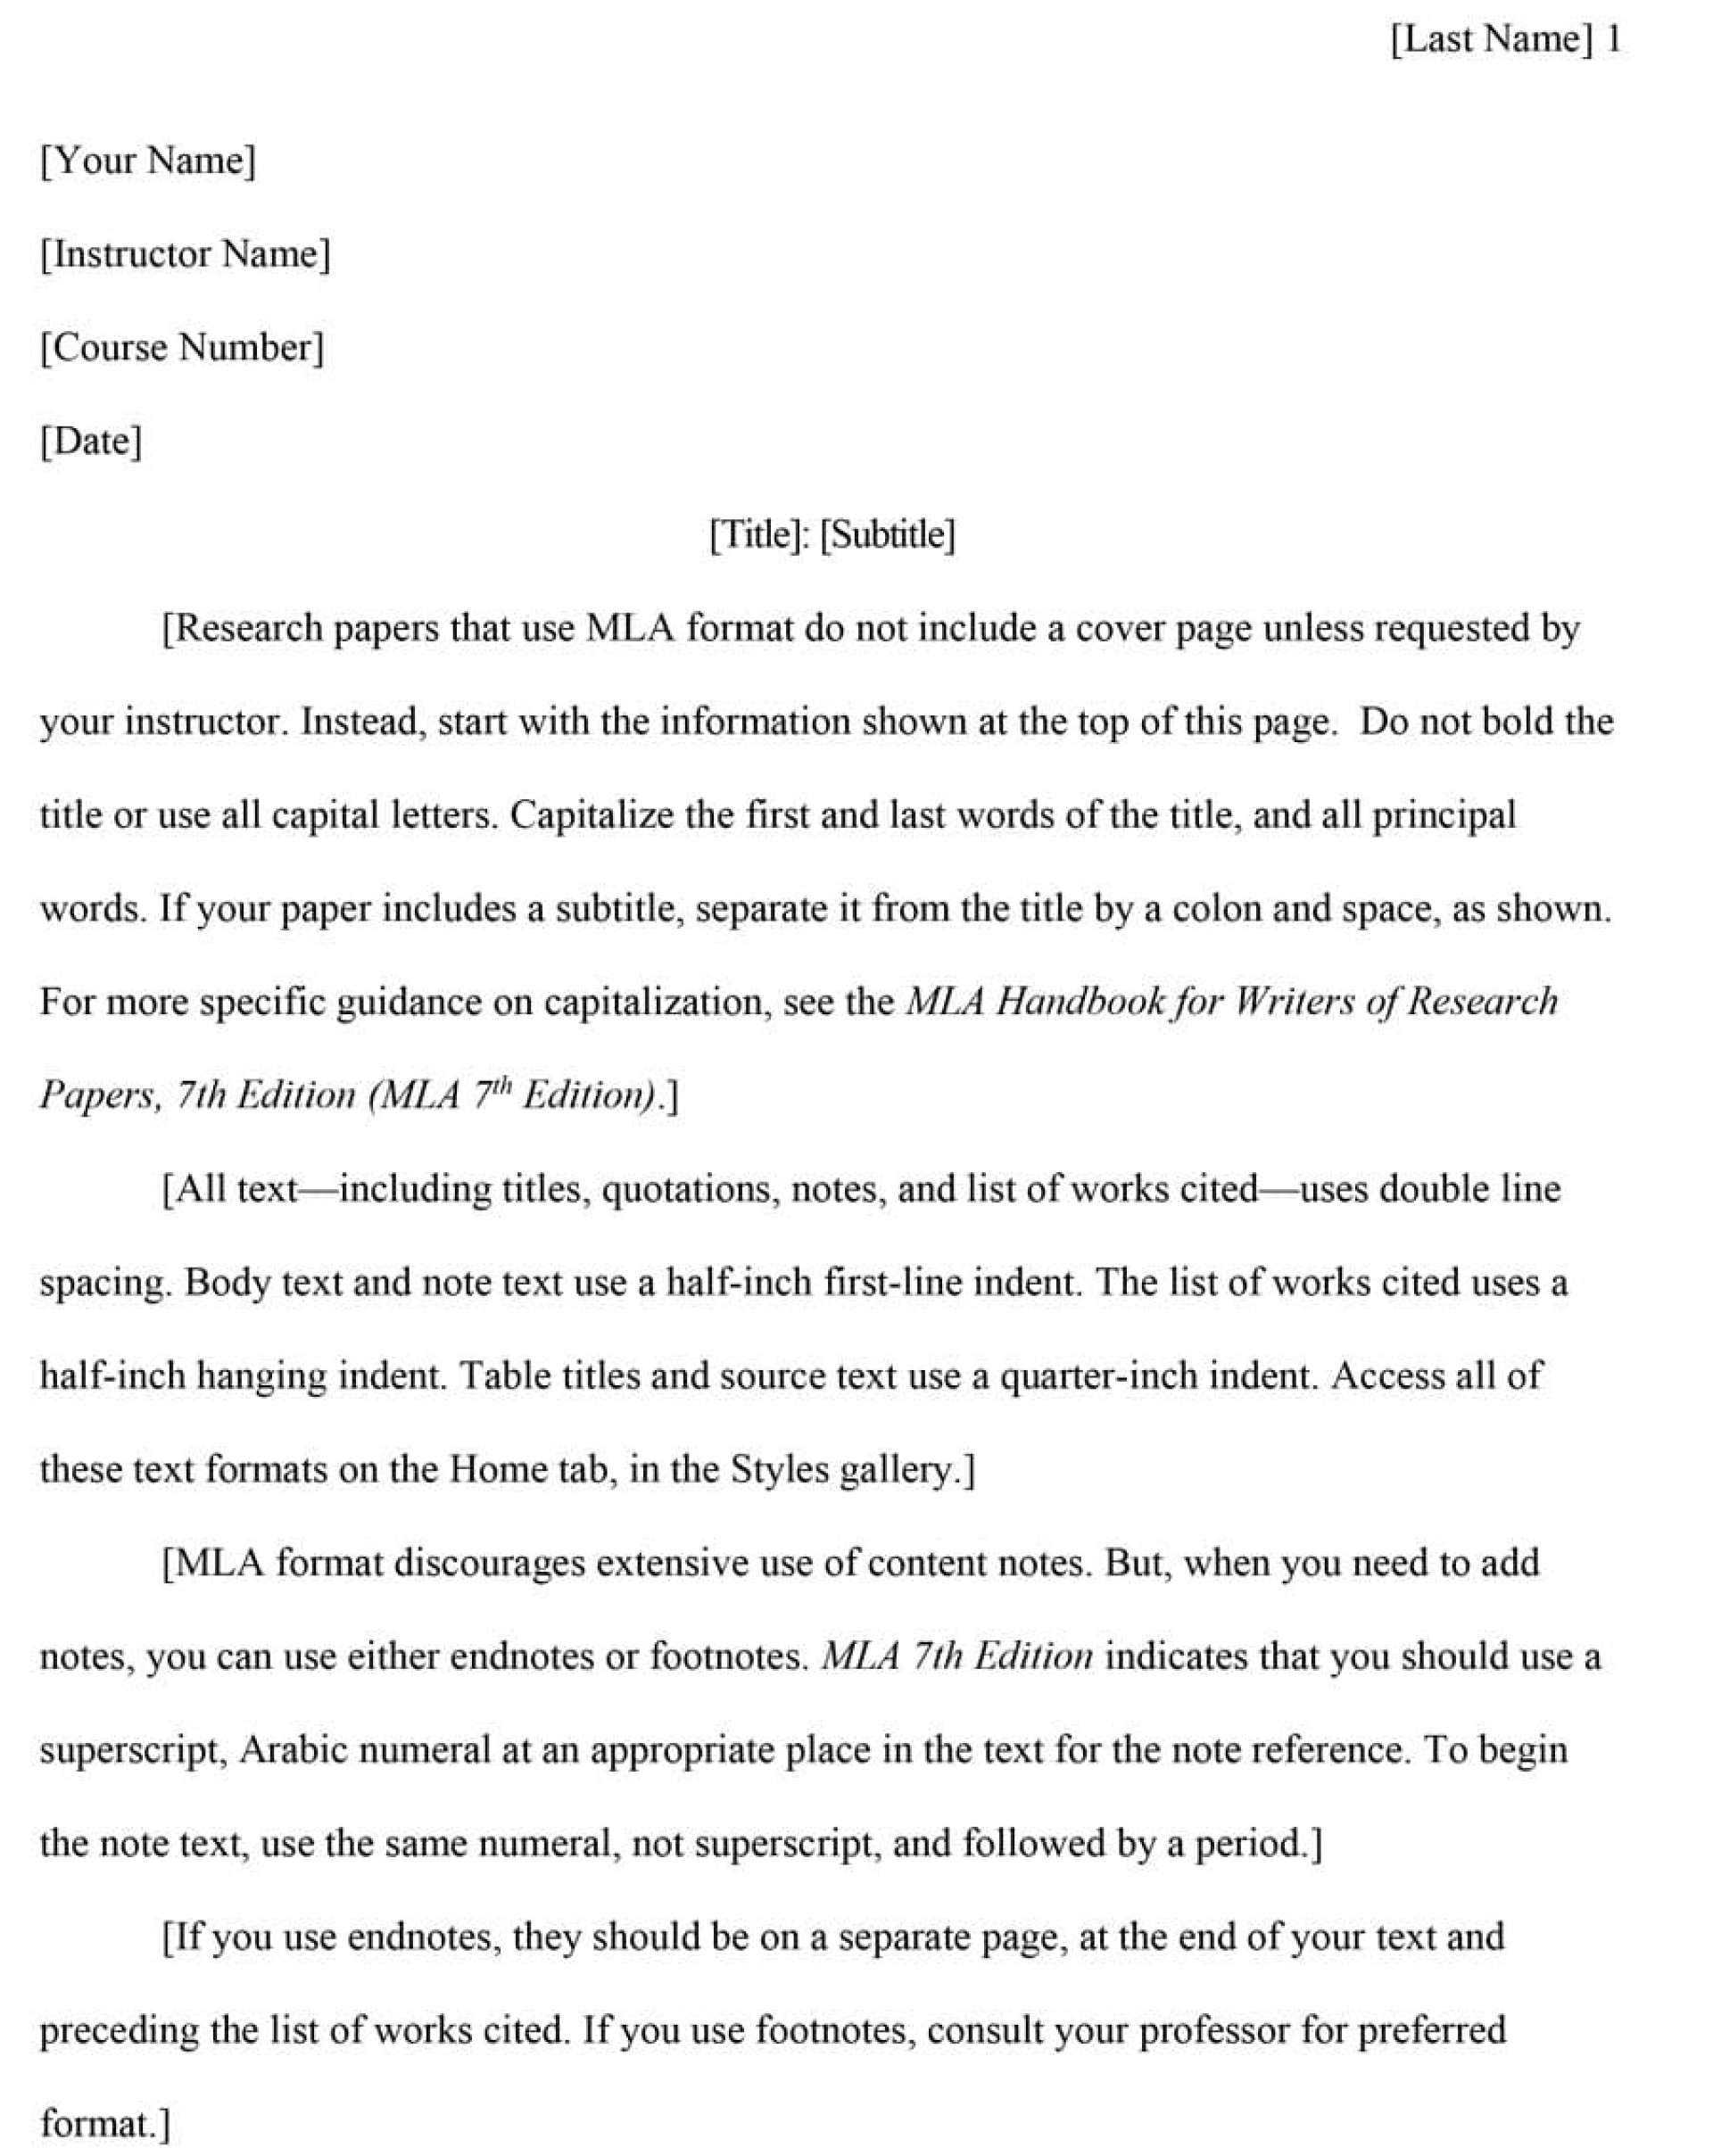 009 Research Paper Proposal Template How To Write Breathtaking A For Topic Example 1920